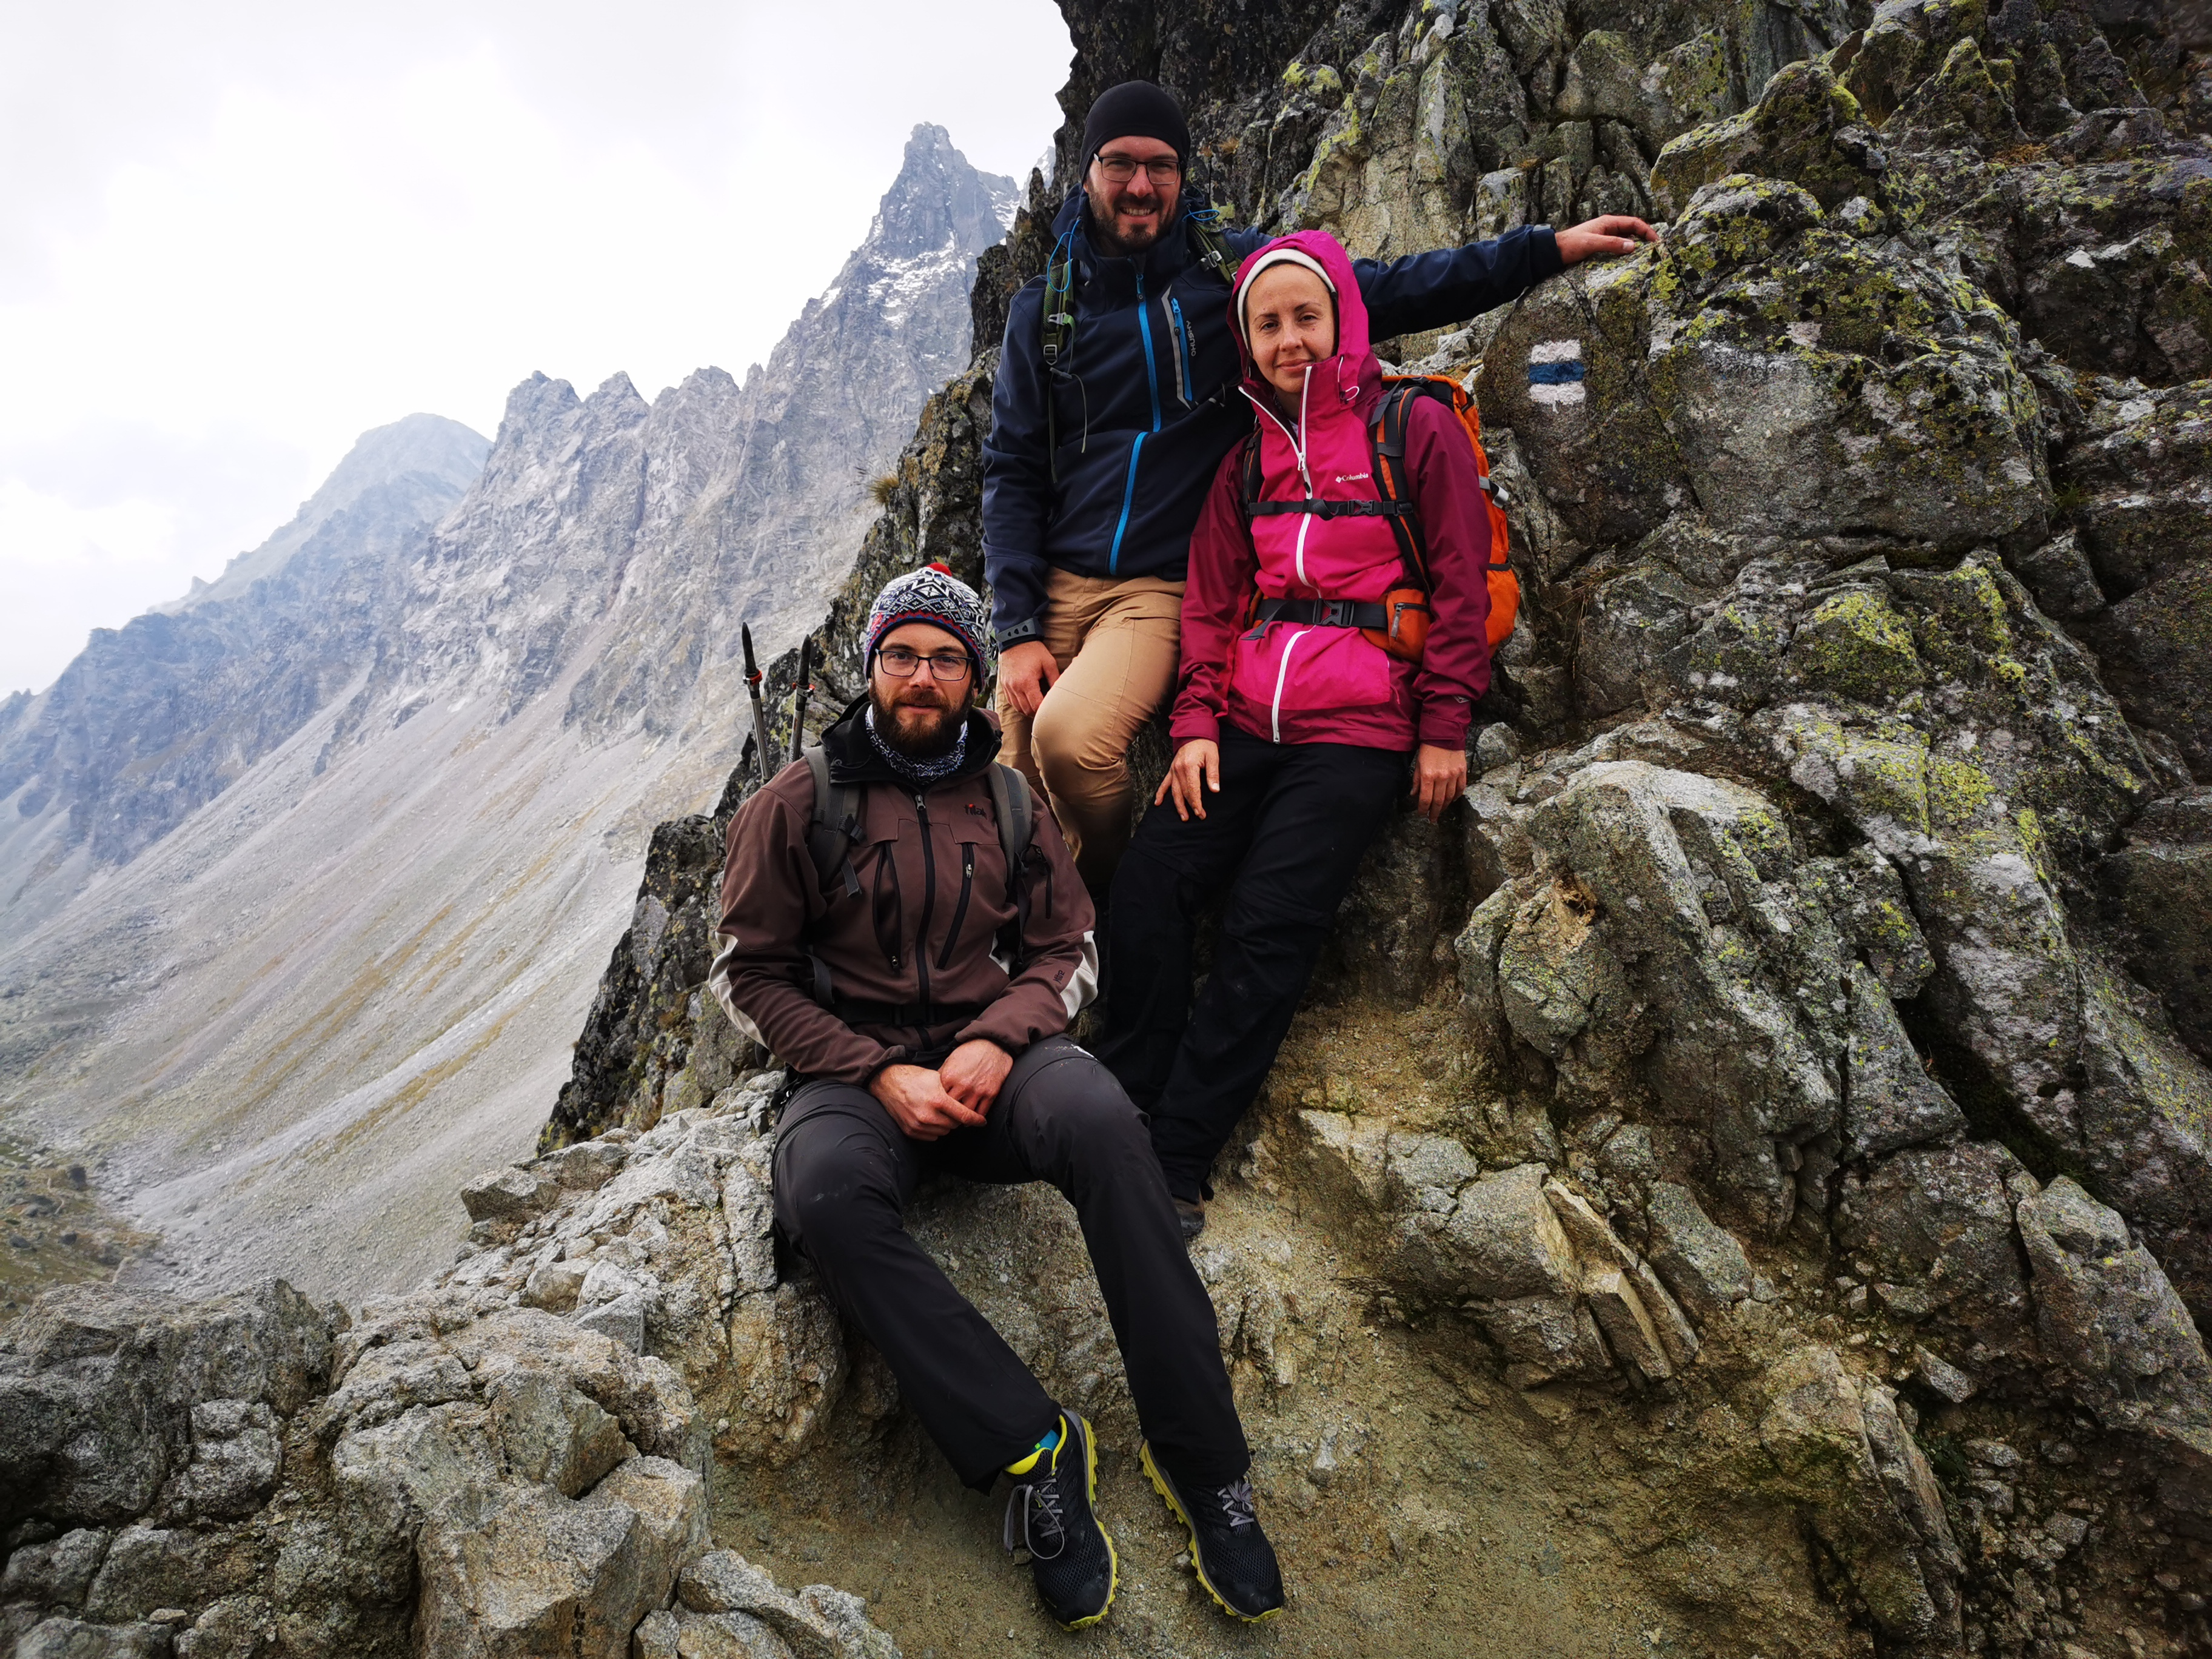 Andrej, Michal and Yuliya at the mountain pass Prielom (2290 m).